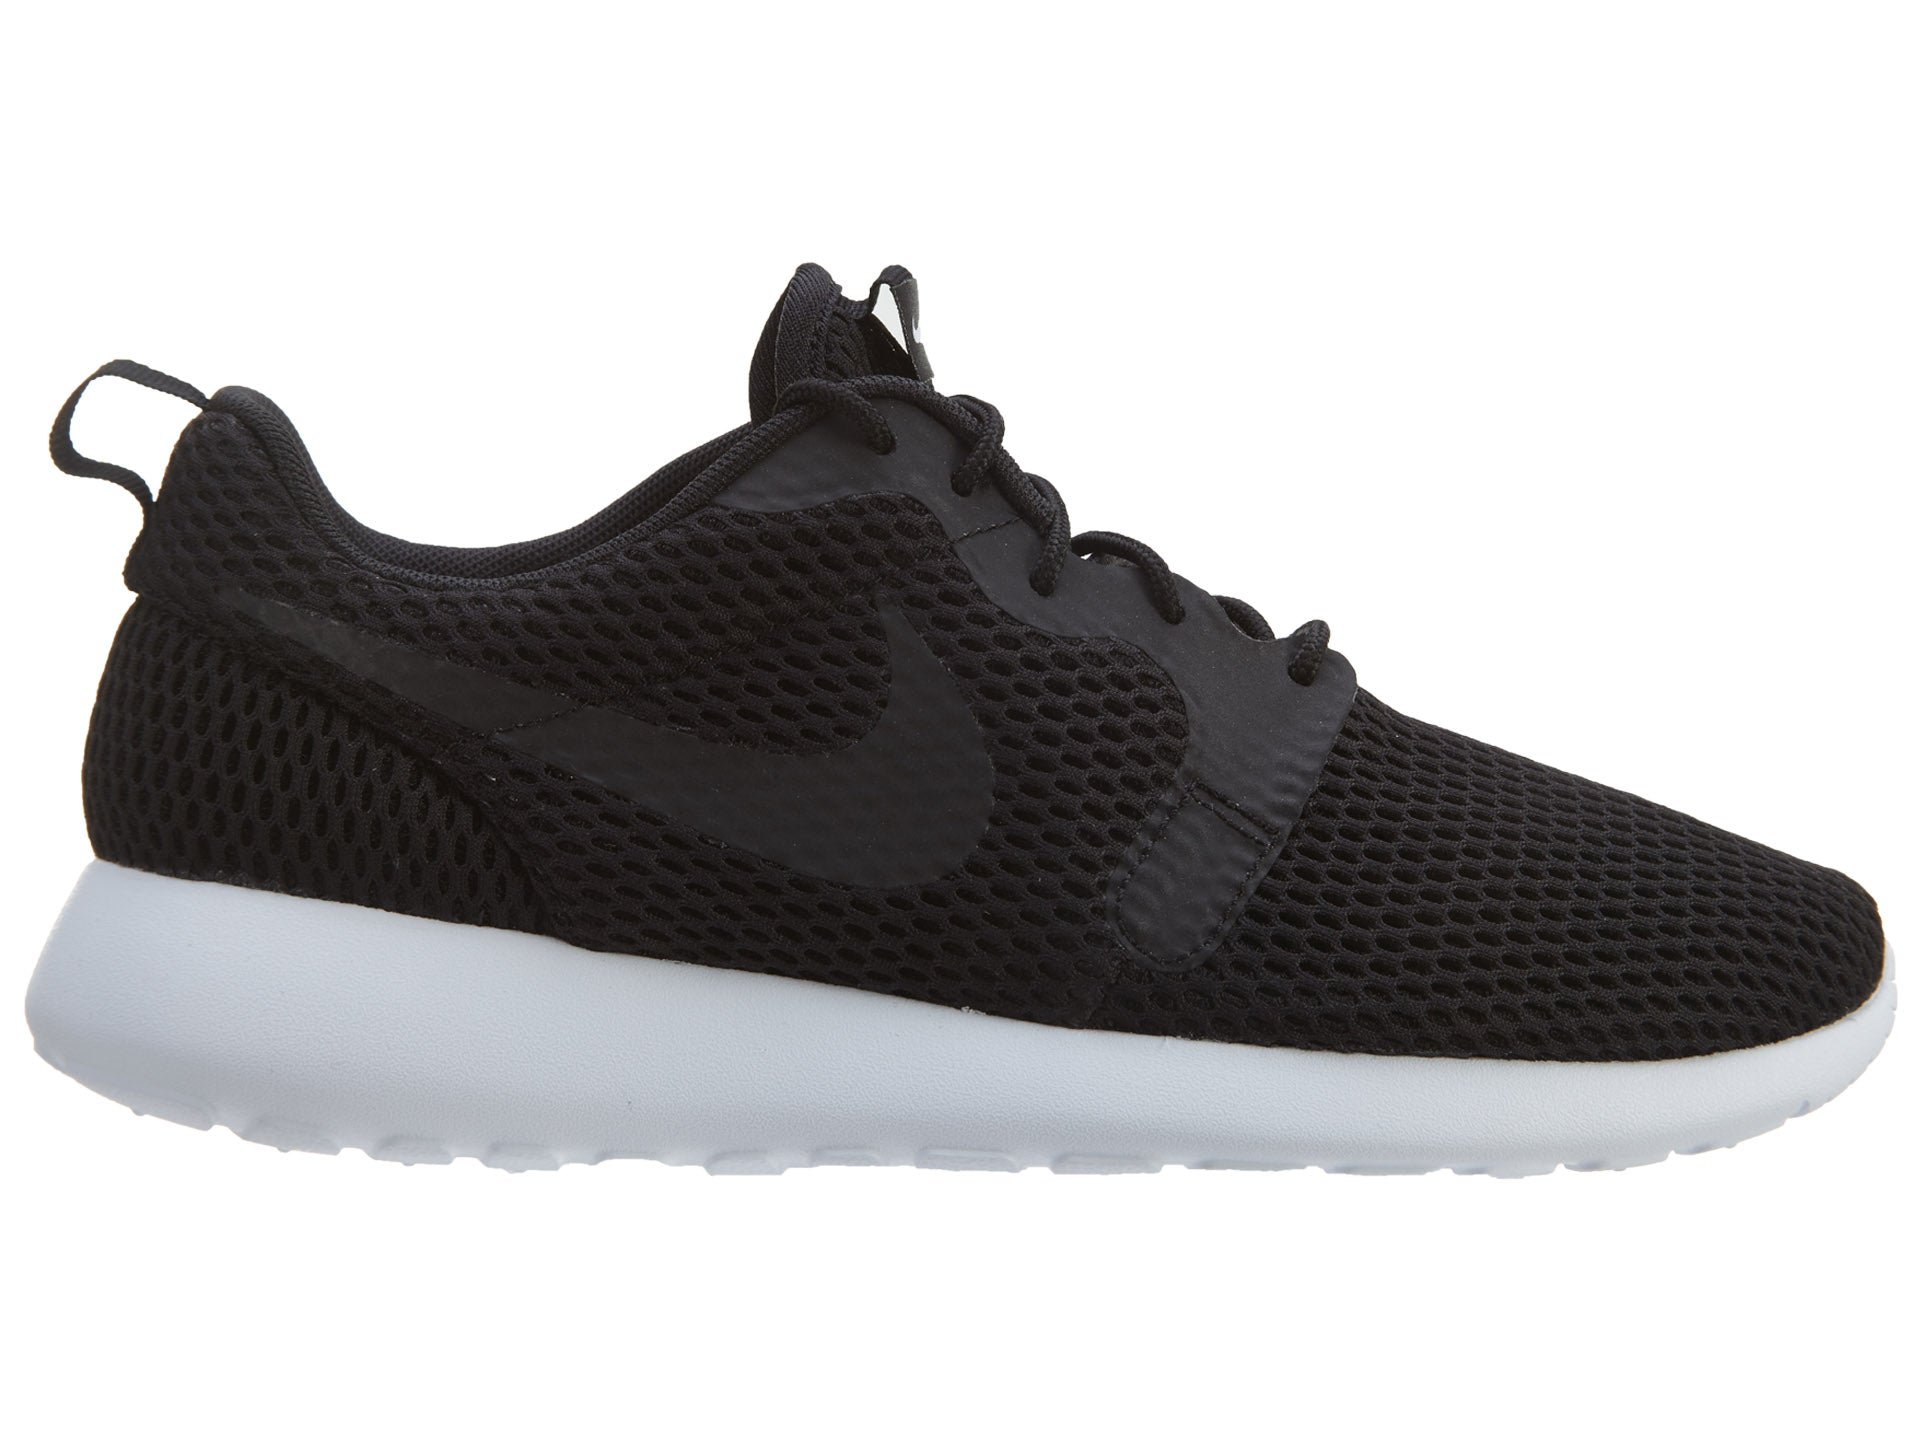 ... c8c2a 8ad33 Nike Roshe One Hyp Br Mens Style 833125 new lower prices ... cbd428fd7056